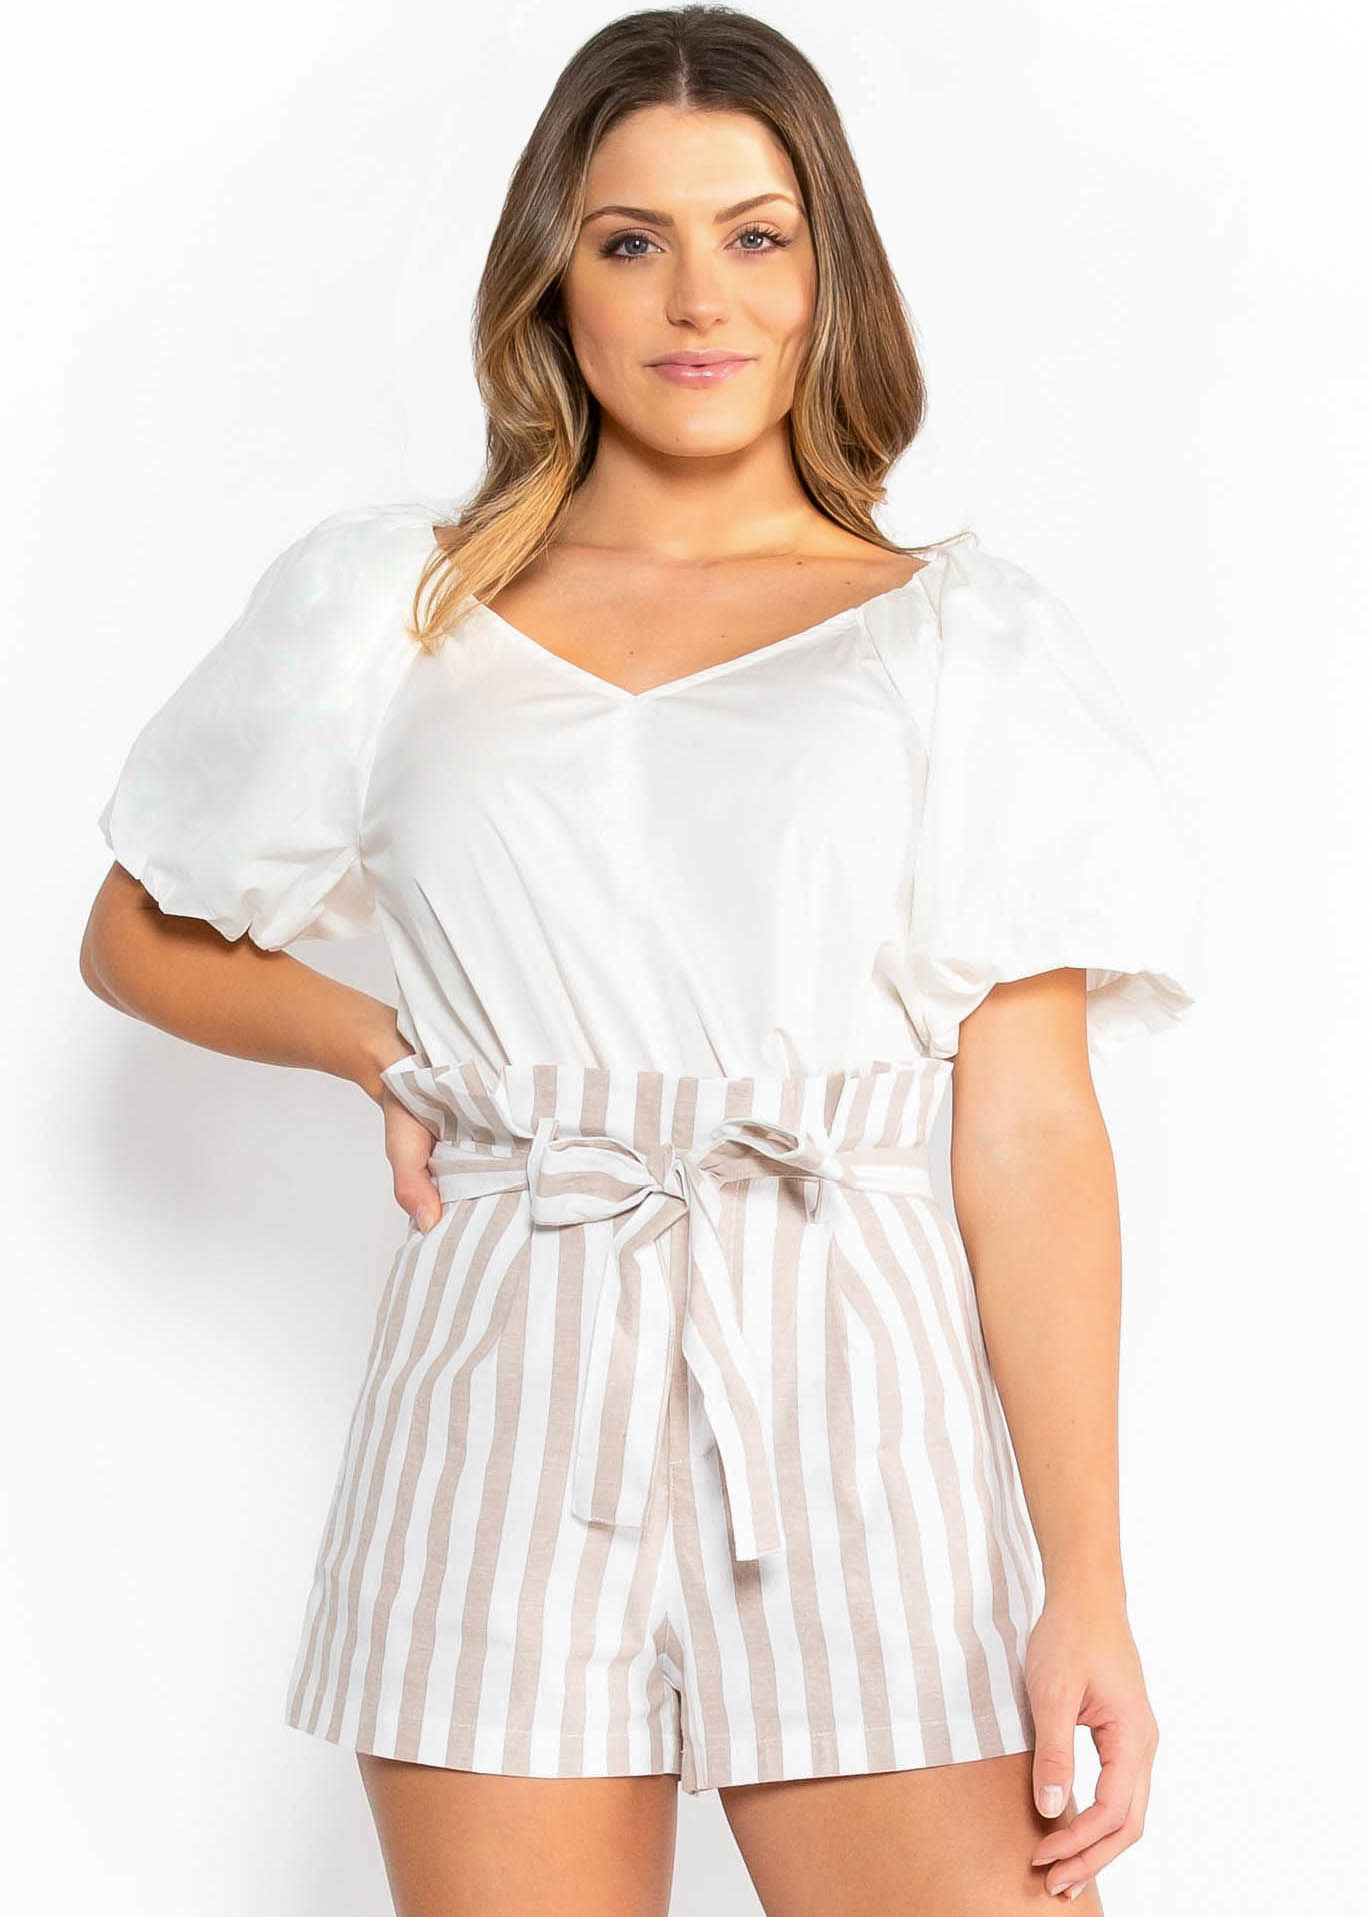 STATE OF STYLE BLOUSE - WHITE